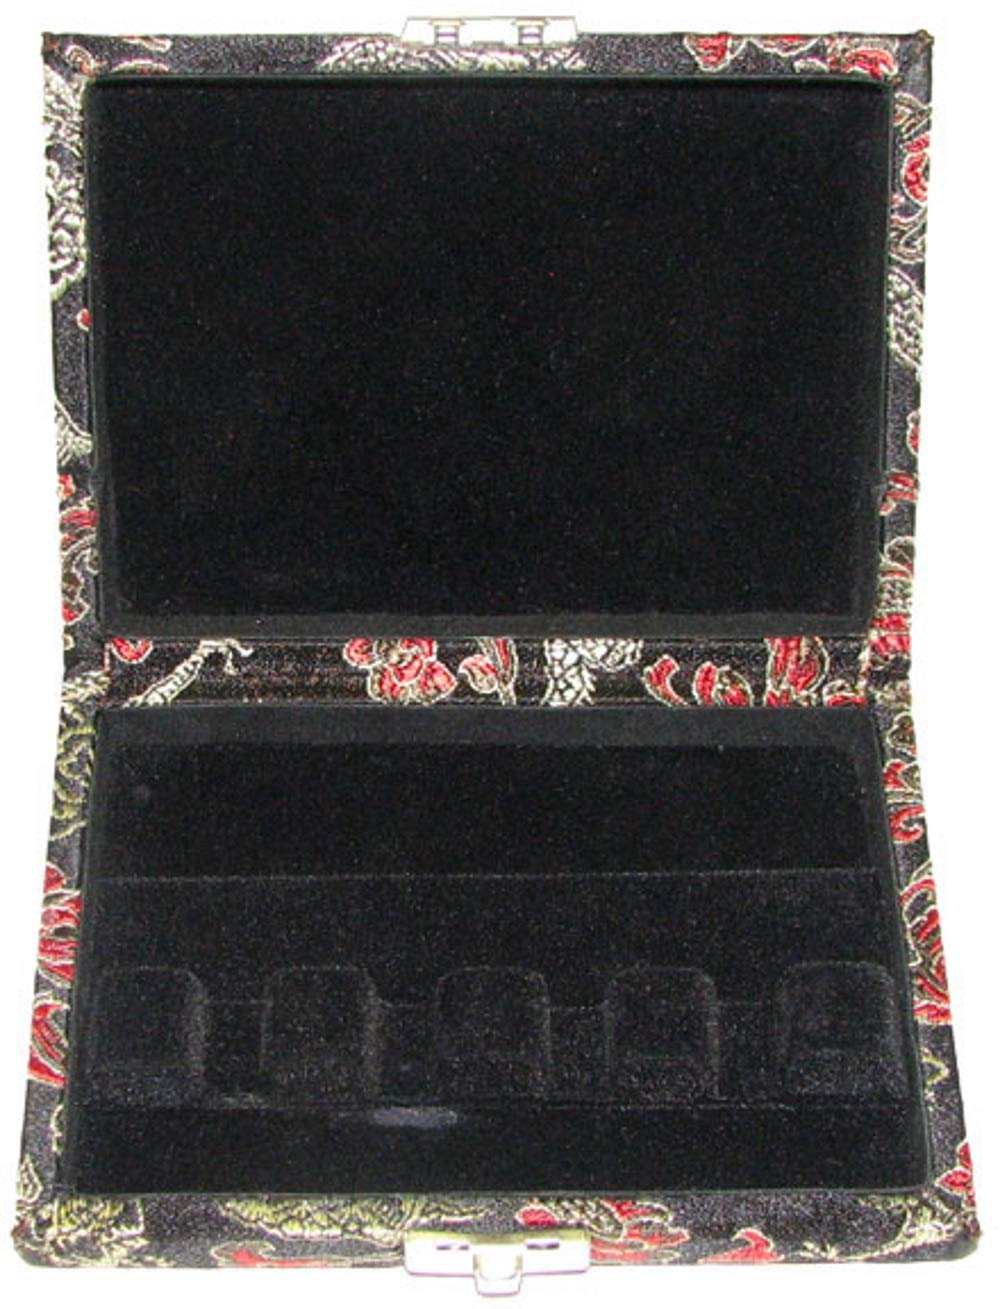 4-Reed Contra Bassoon Reed Case Silk (Black/Gold) by Oboes.ch (Image #2)